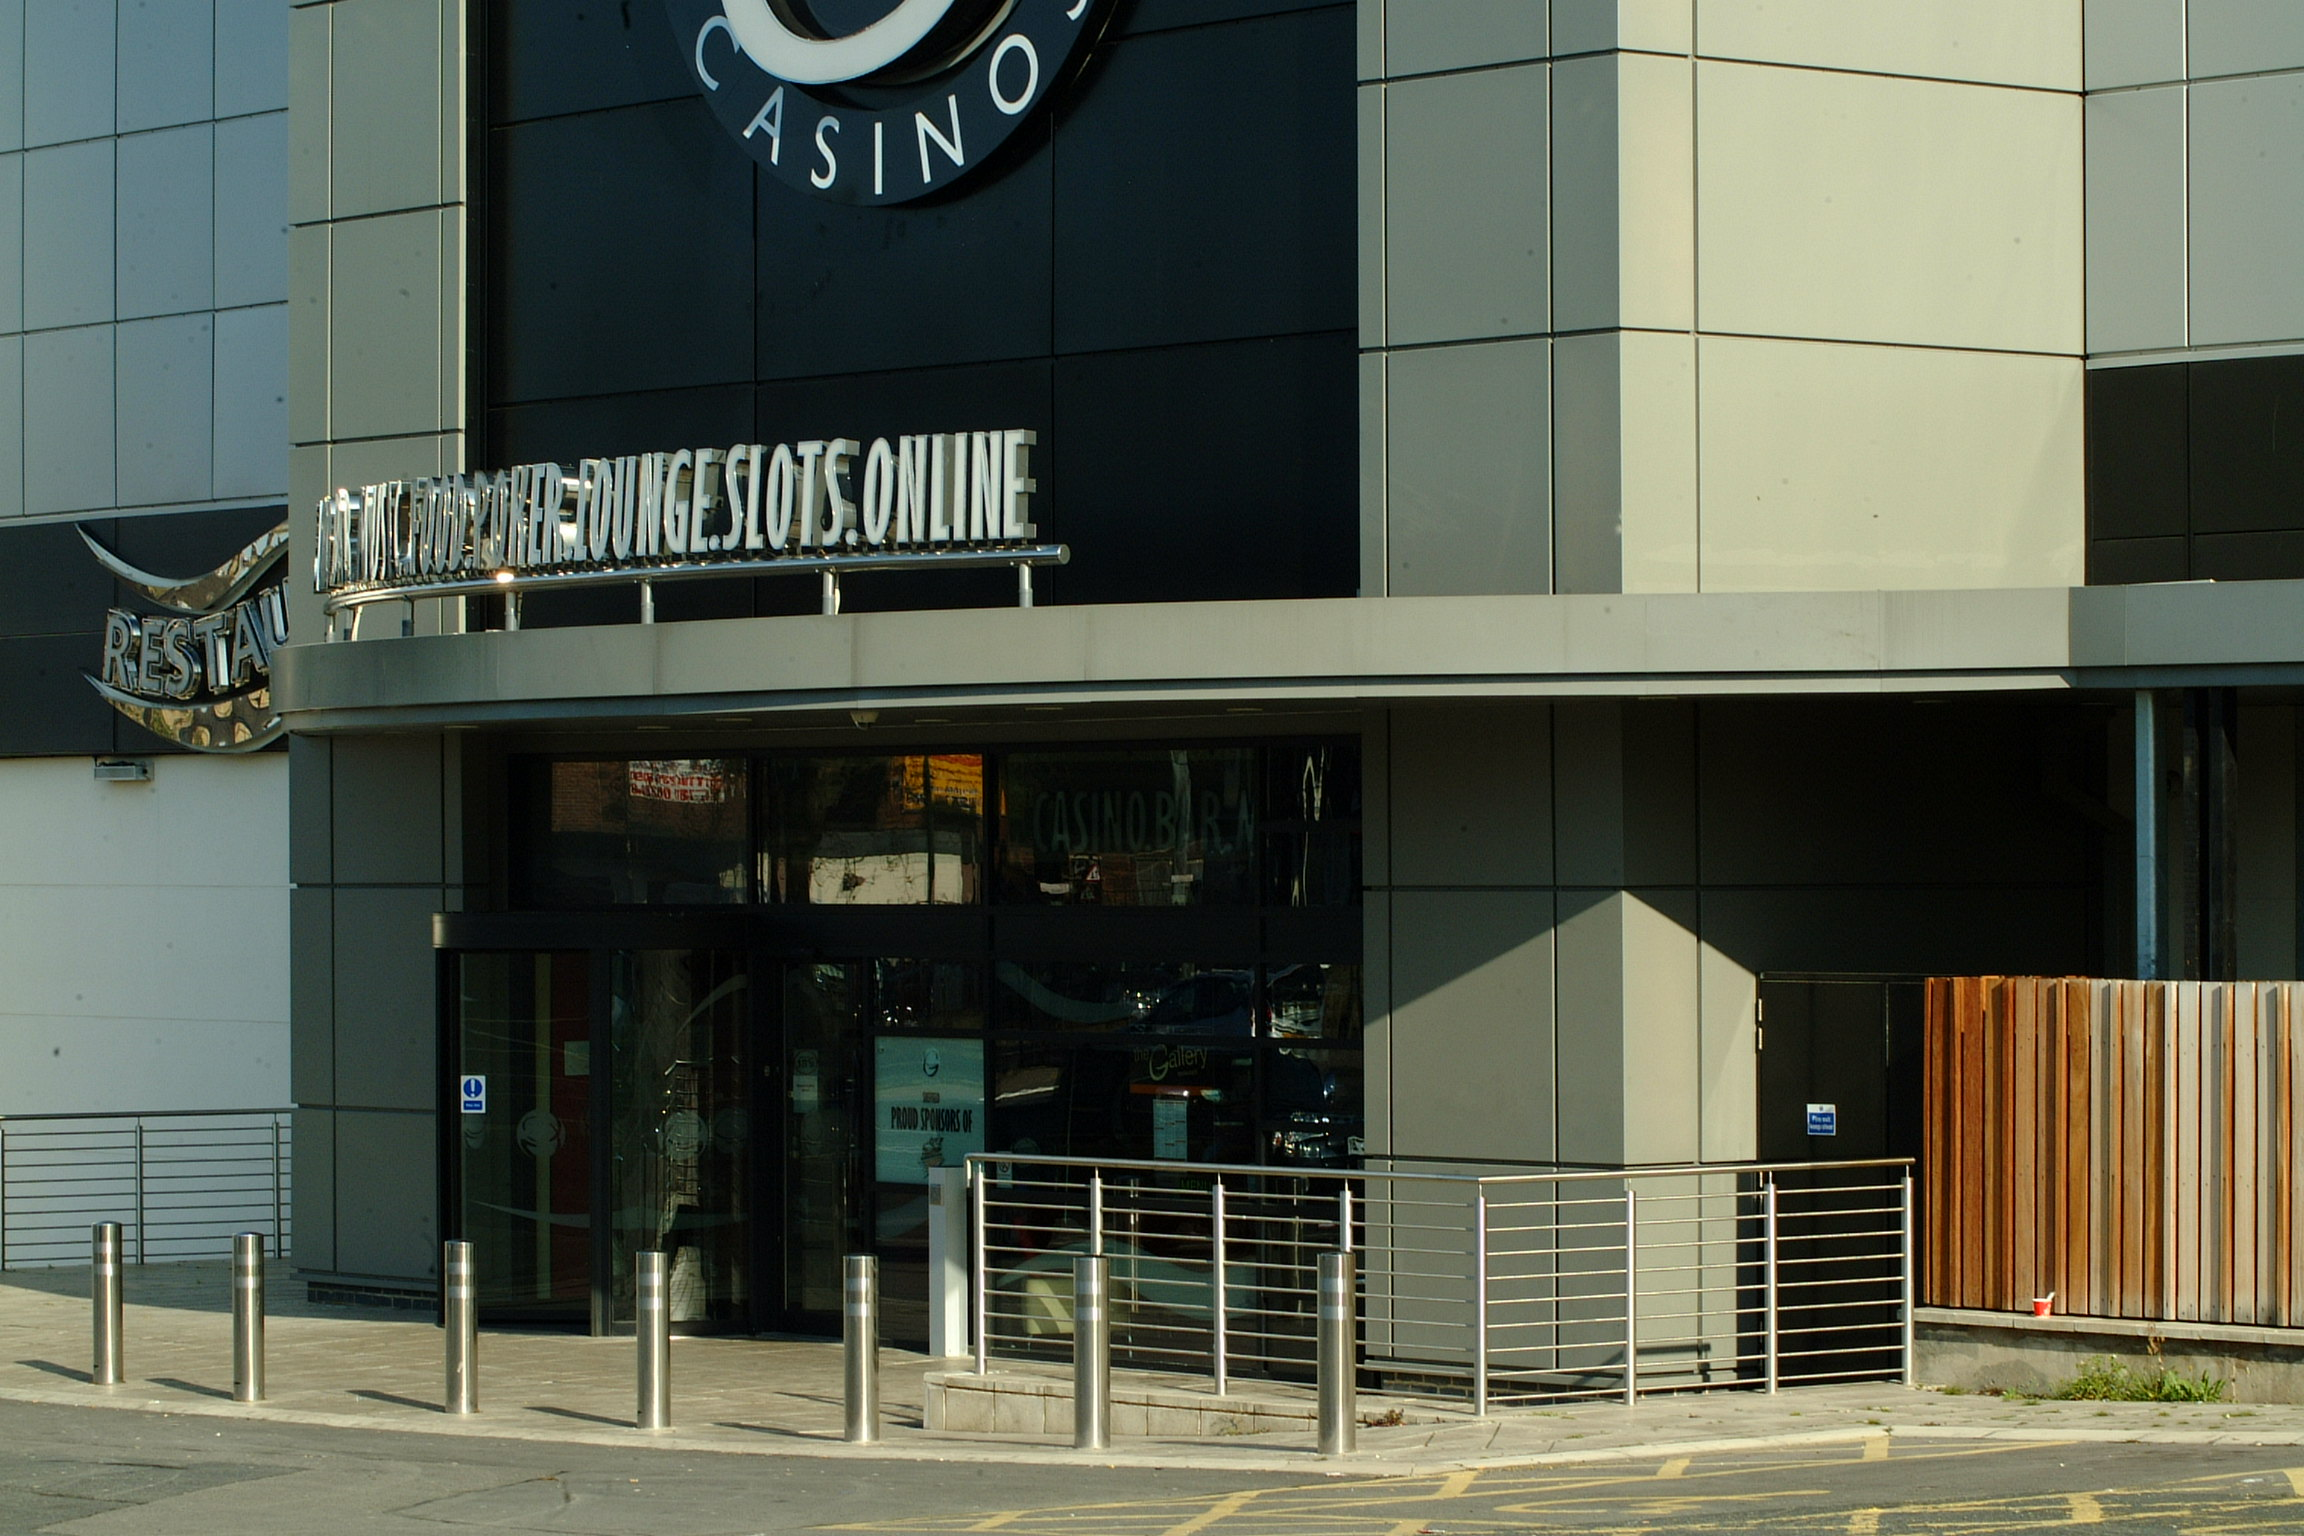 g casino online sheffield